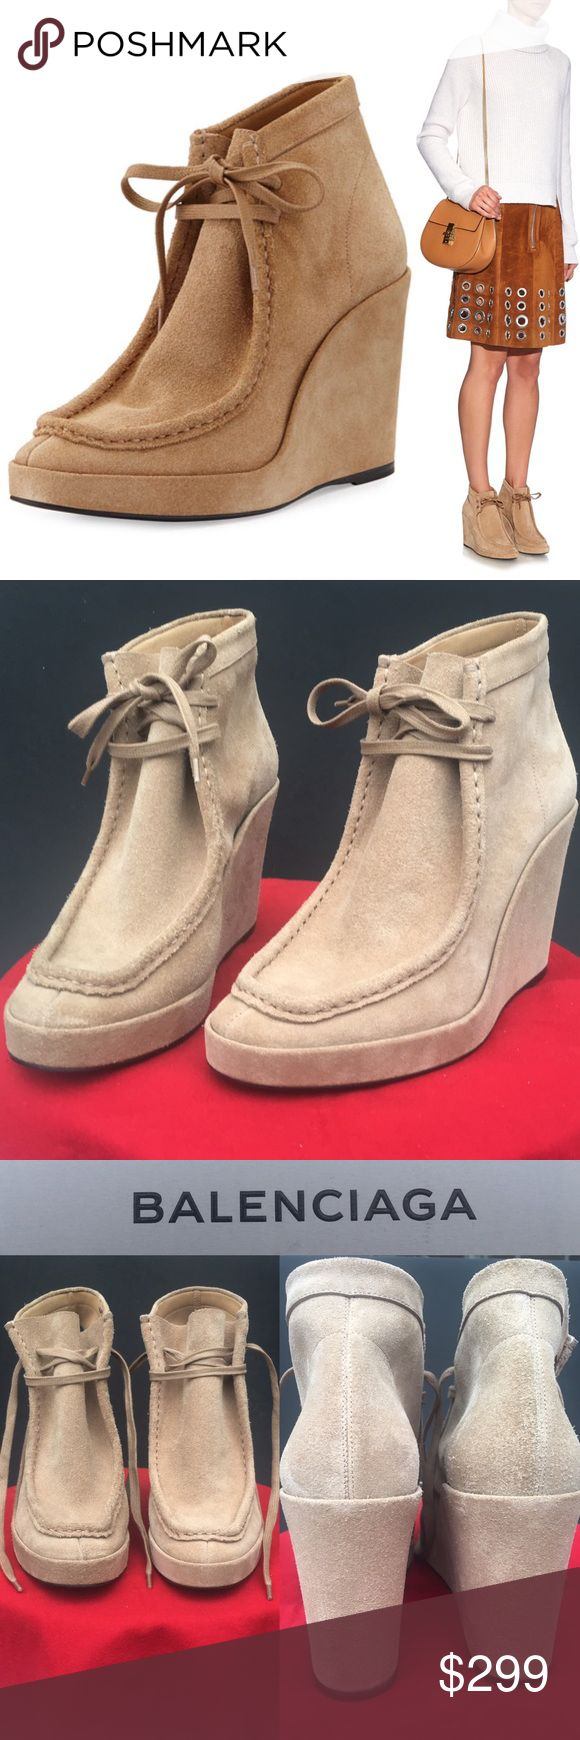 """BALENCIAGA Camel Chukka Suede Lace Wedge Booties ❤ ❤BALENCIAGA❤ Sold Out Camel Chukka Suede Lace-Front Wedge Boot NIB (never worn) $965 MSRP (I paid $799 during Neimans sale) Size 40, which Poshmark equates to US10. Covered beige wedge heel, round moc toe, self-tie front, tonal topstitching, smooth outsole, leather lining/soles, made in Italy🇮🇹 Pic shows 799 price written on inside of 1 bootie in marker pen. Heel H approx: 4 1/14"""", Platform wedge H: 3/4"""". NIB; includes orig. box+dust bag…"""